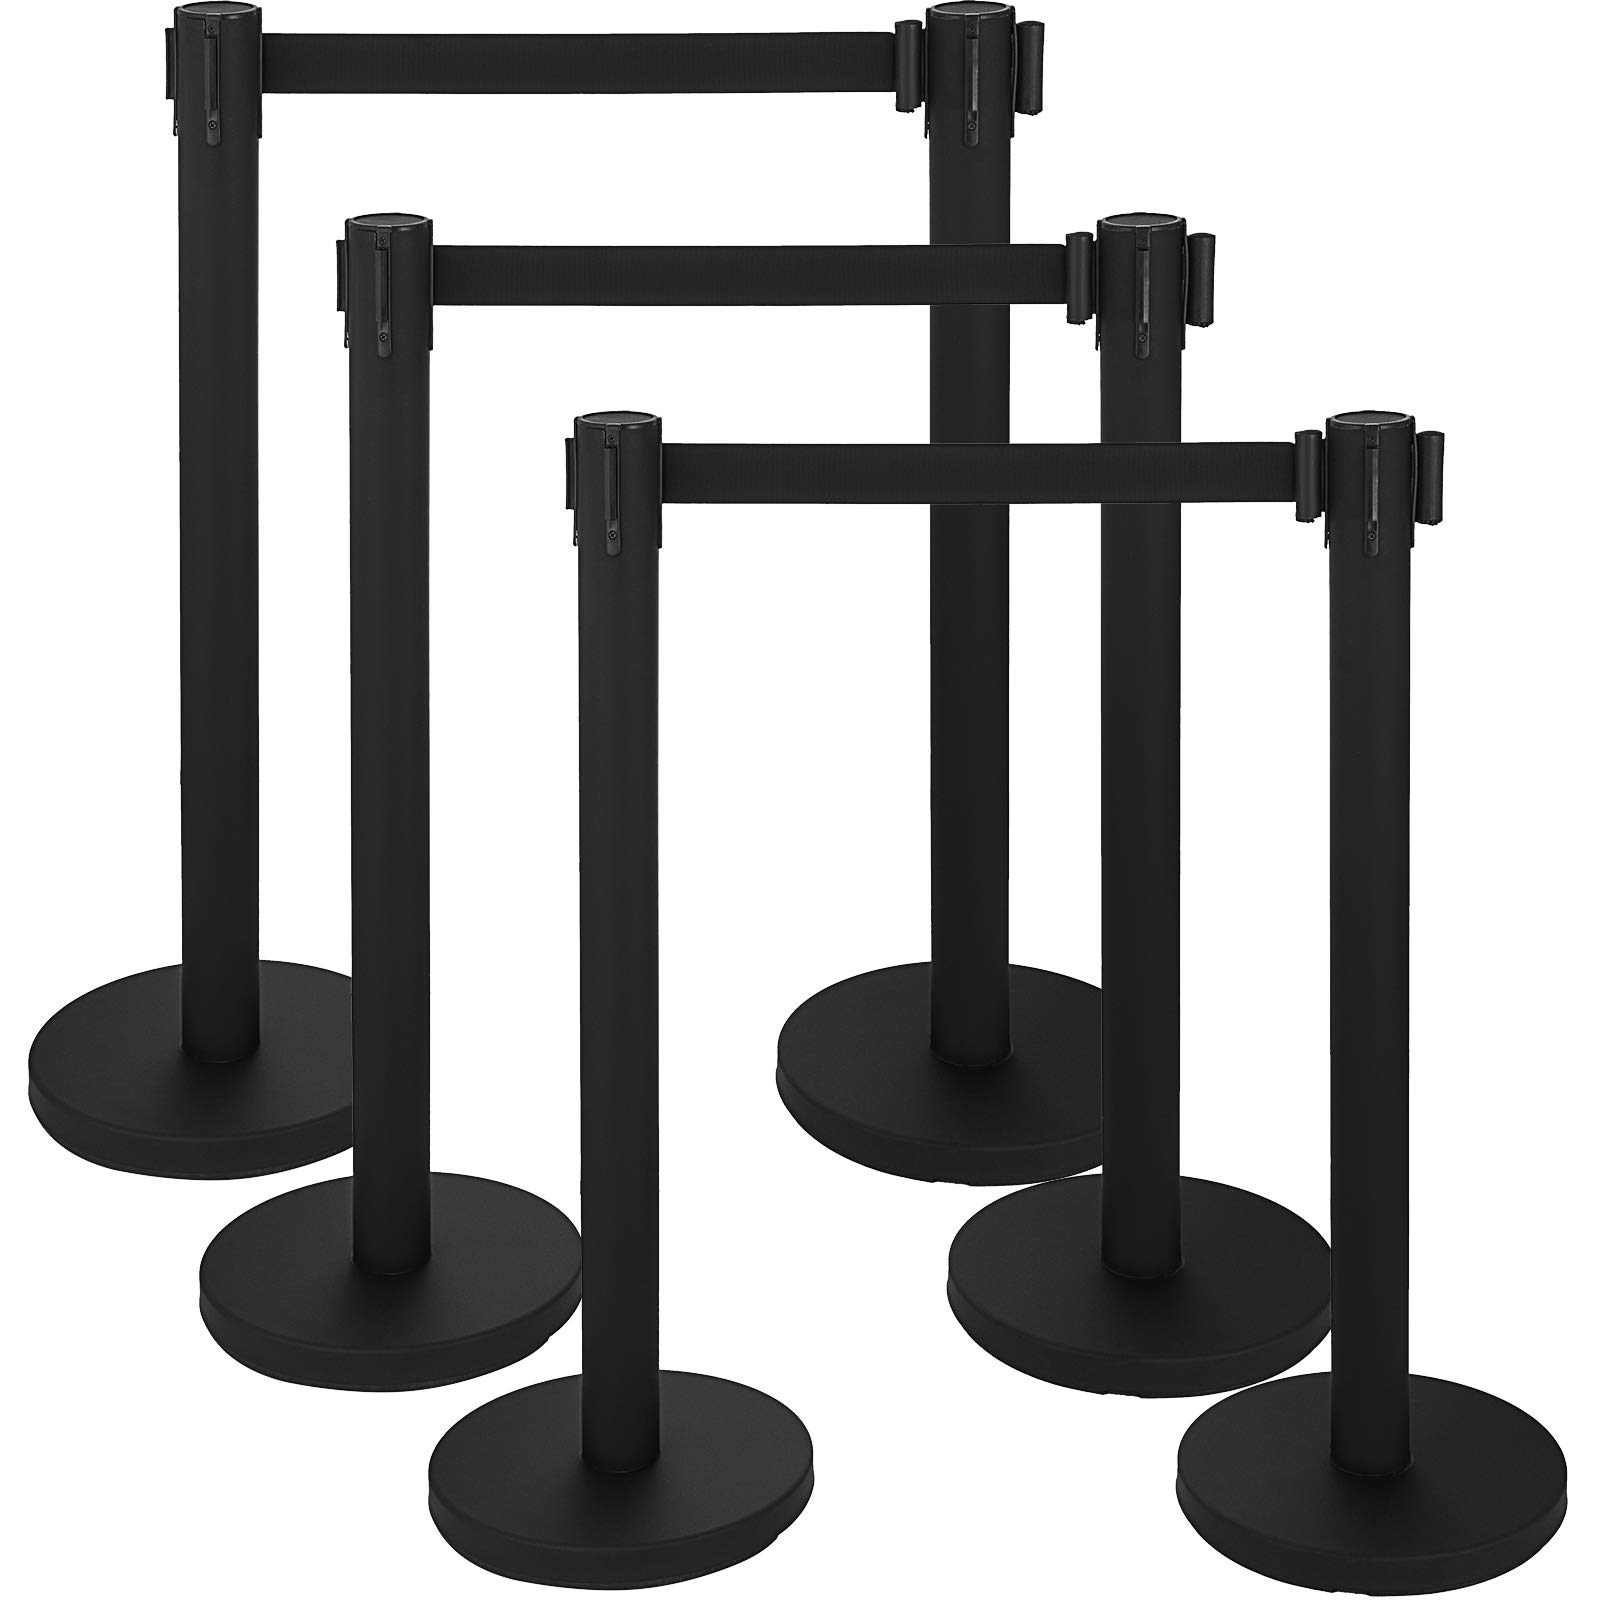 Mophorn 6 Pcs Stanchion Queue Post Black Stanchion Posts Queue Pole 36In Height Crowd Control Barriers with Retractable Belt by Mophorn